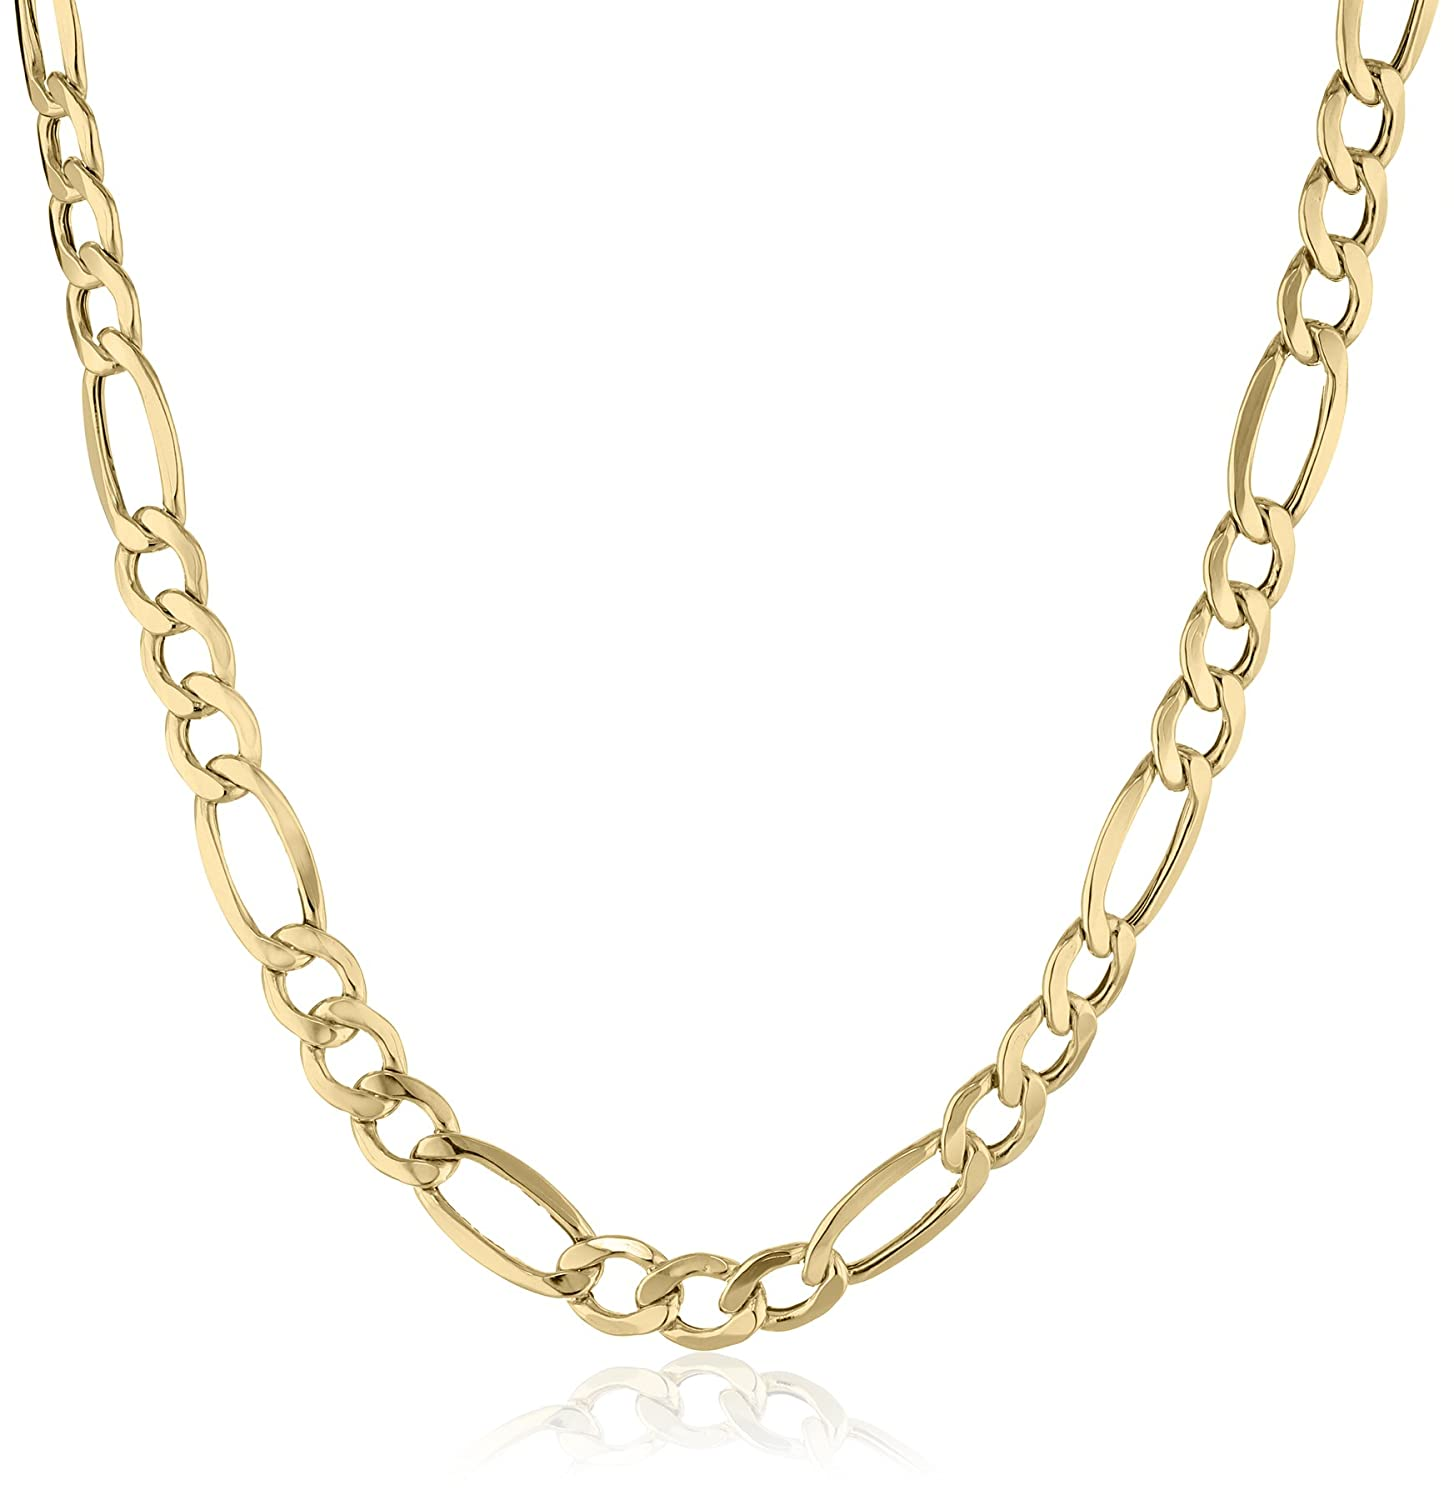 long gold detail new steel for kstone dubai product designs men link necklace pure design layered plated chains buy chain stainless